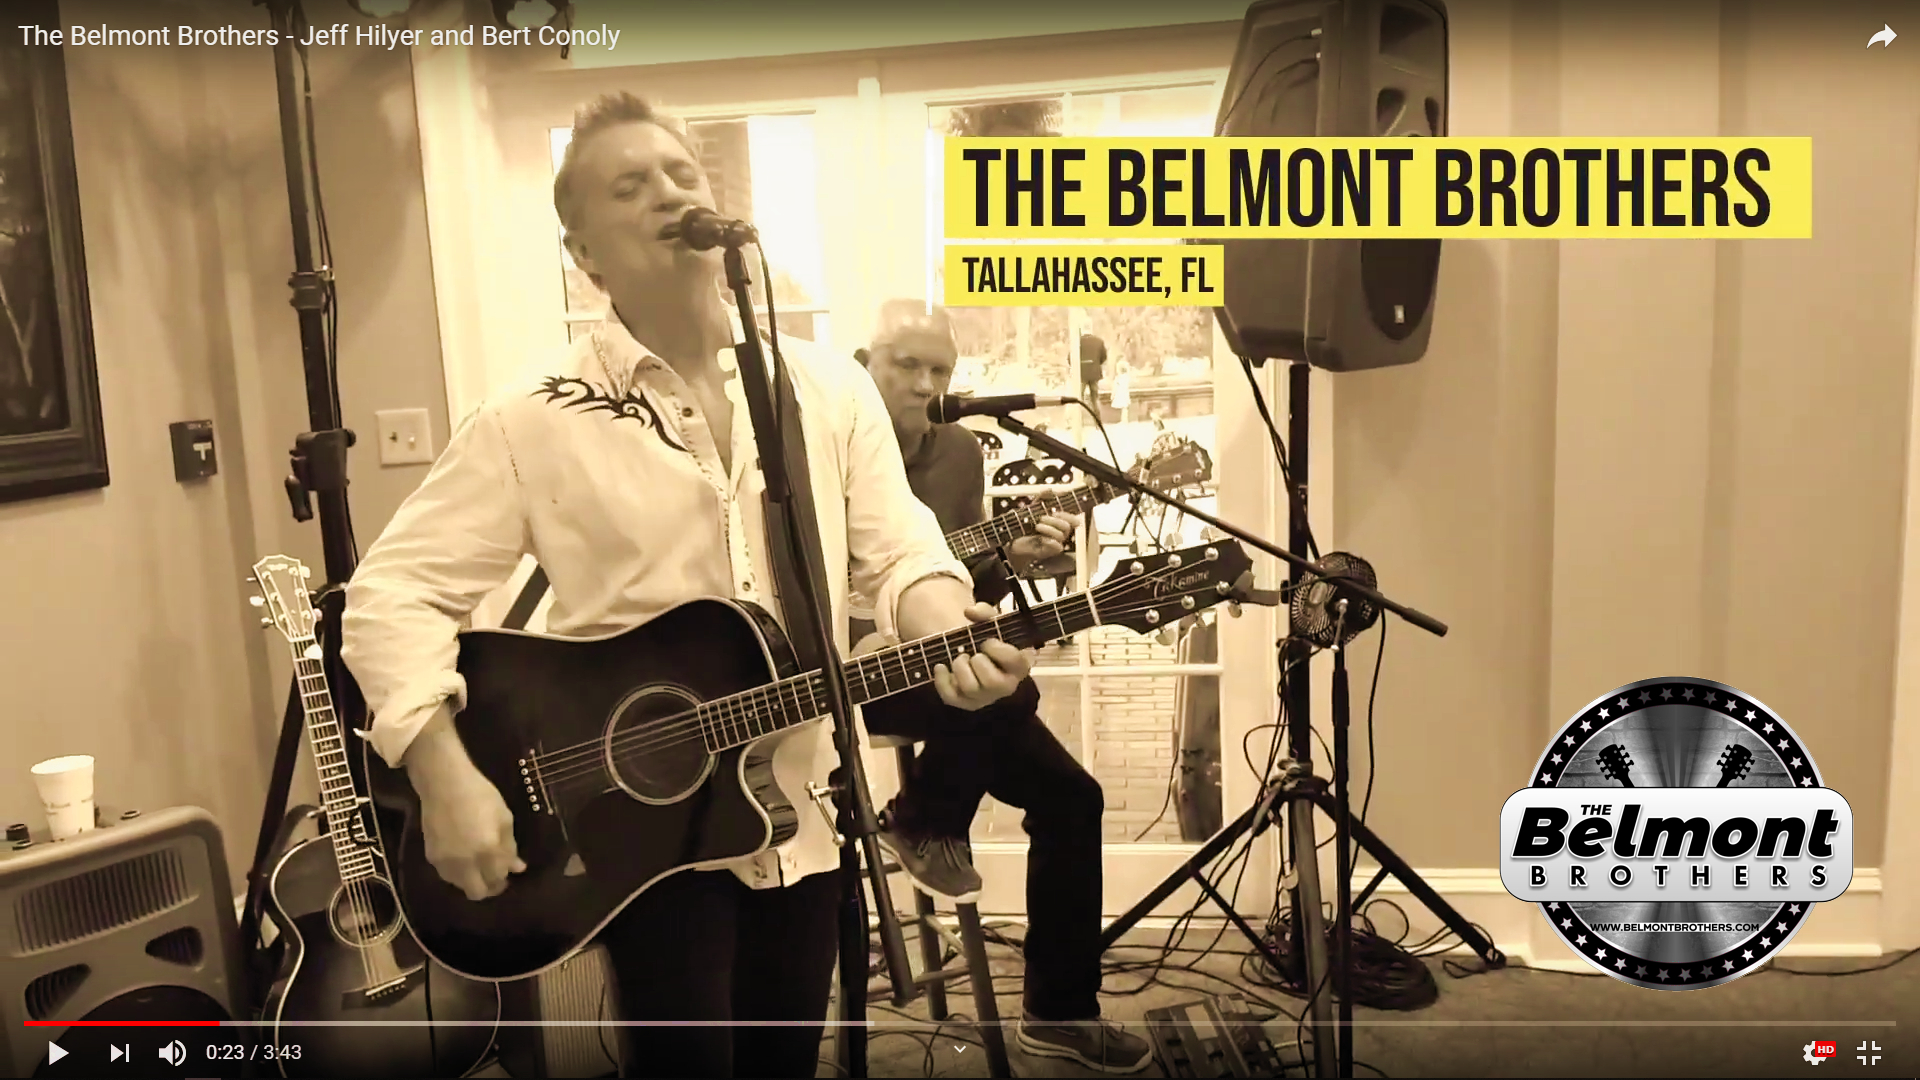 Jeff Hilyer & Bert Conoly - The Belmont Brothers